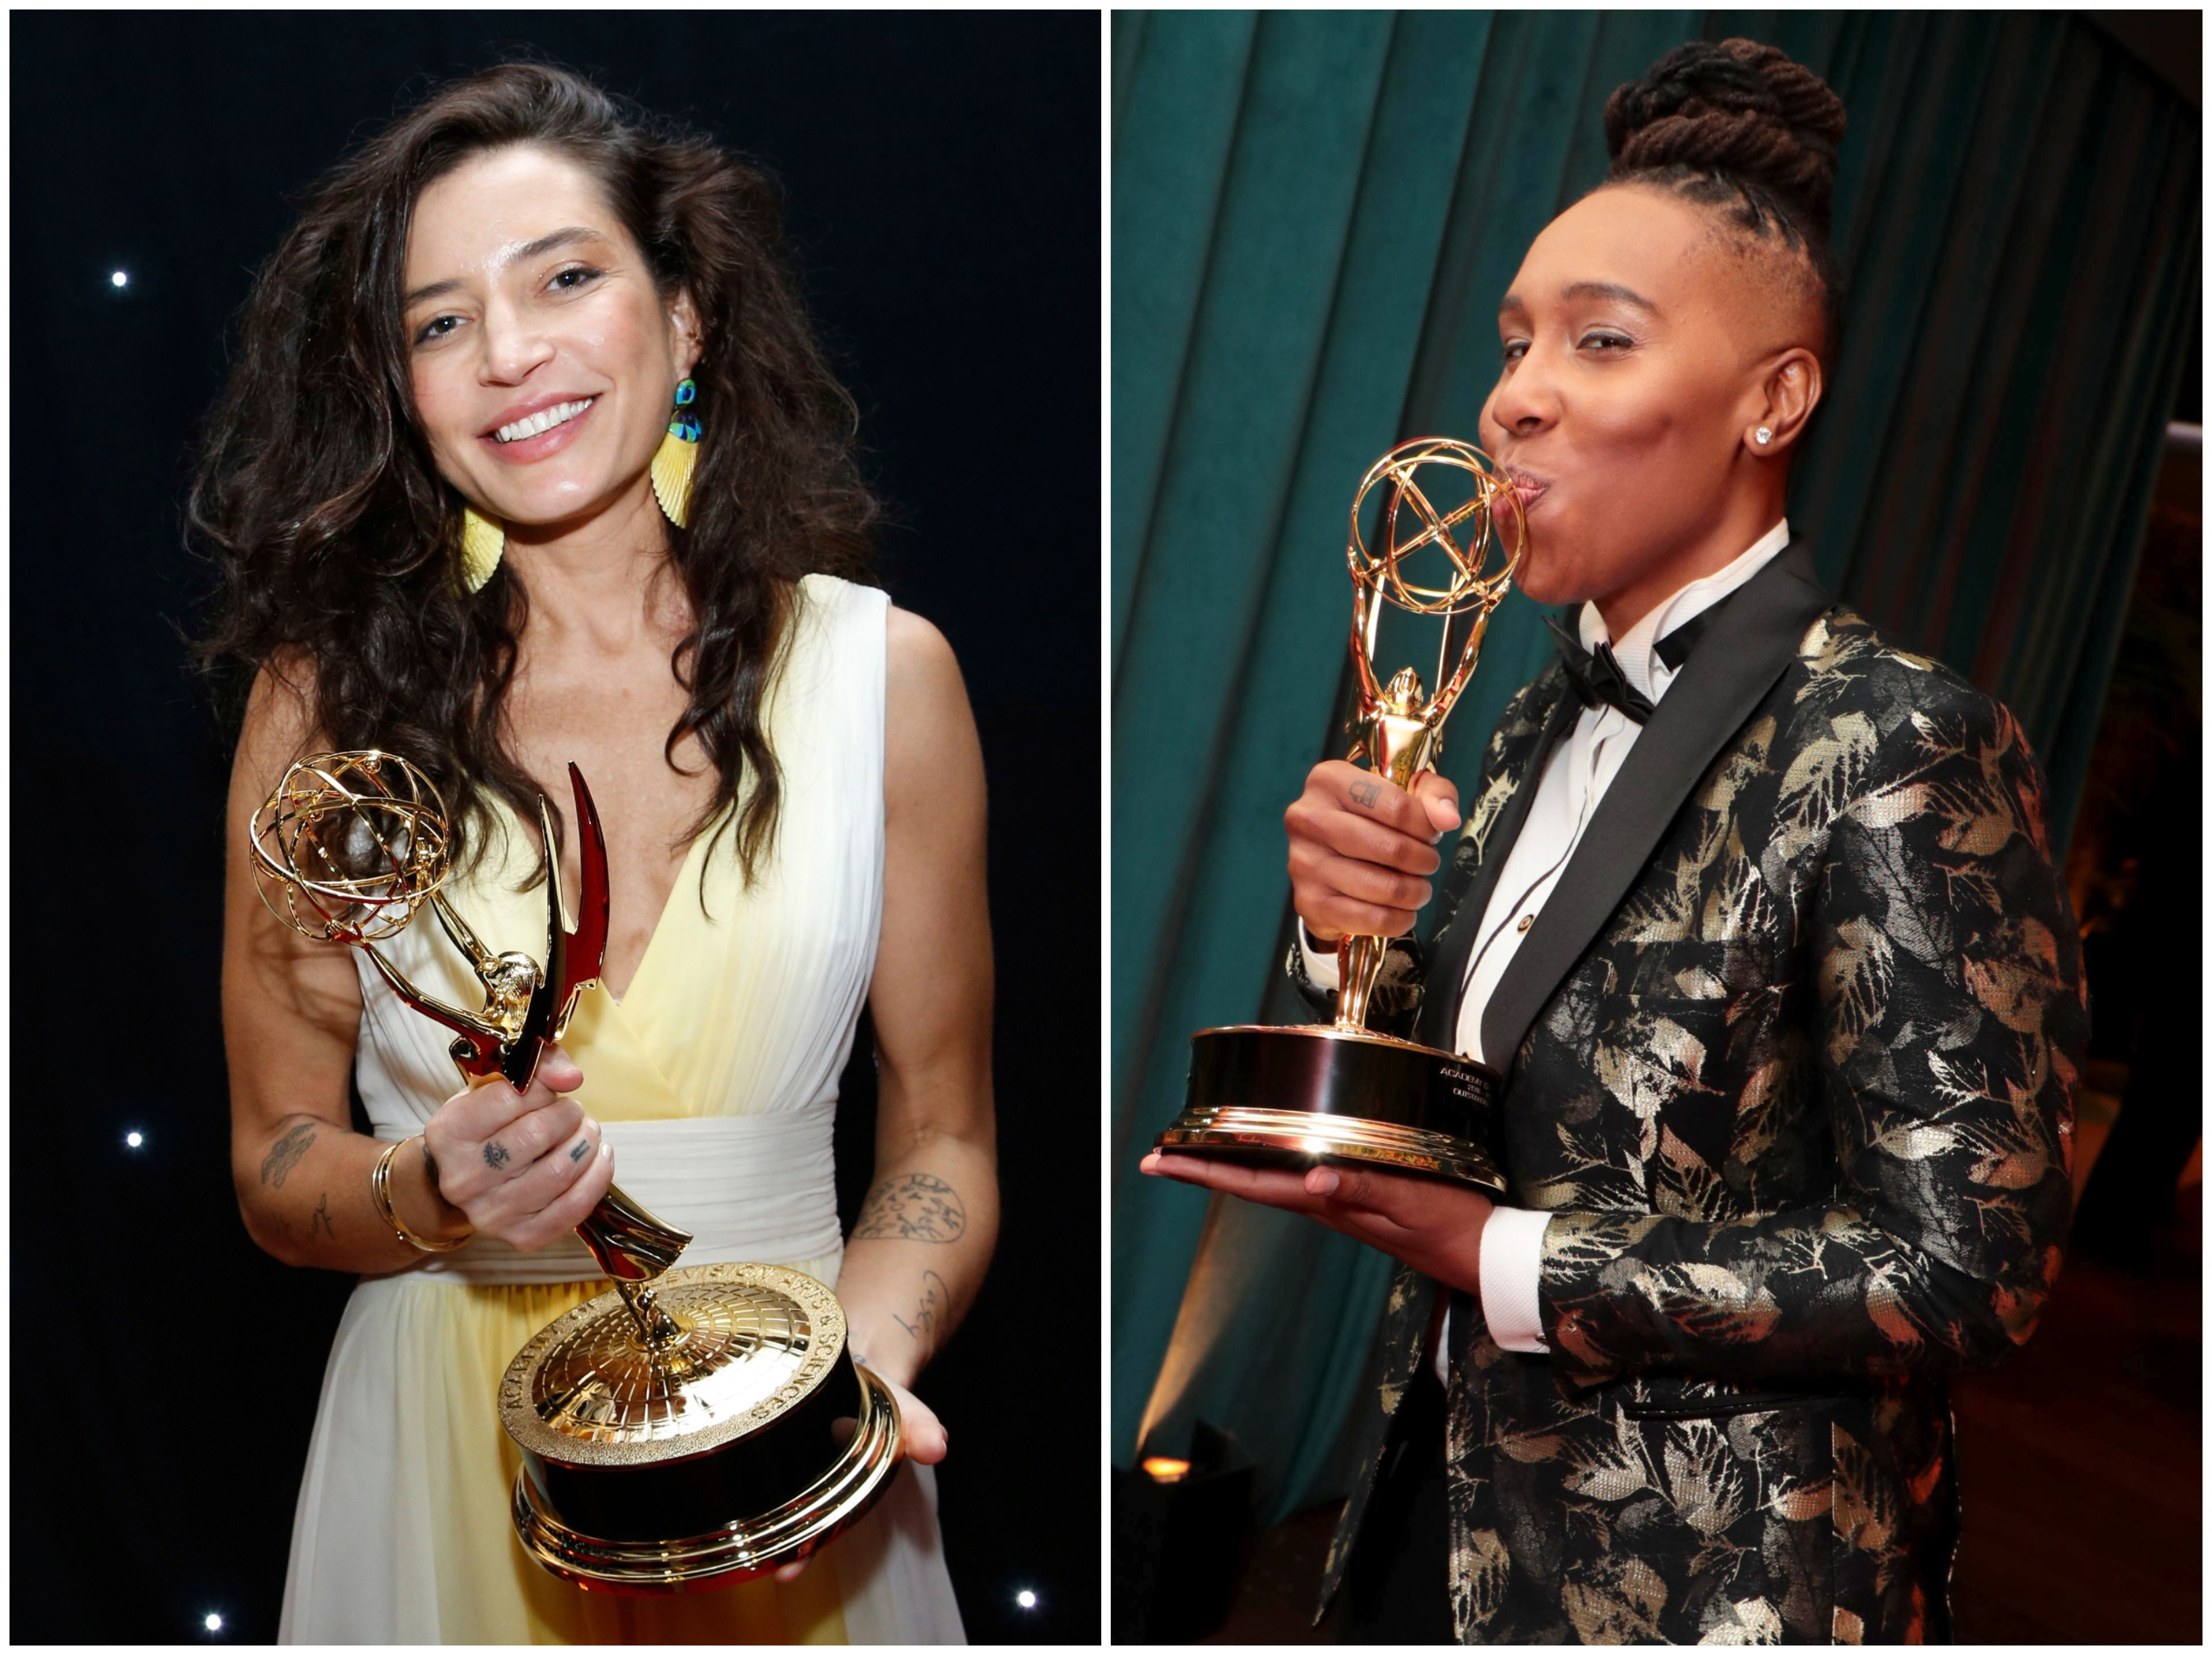 Emmys Nominations: Directing and Writing Categores Still ...